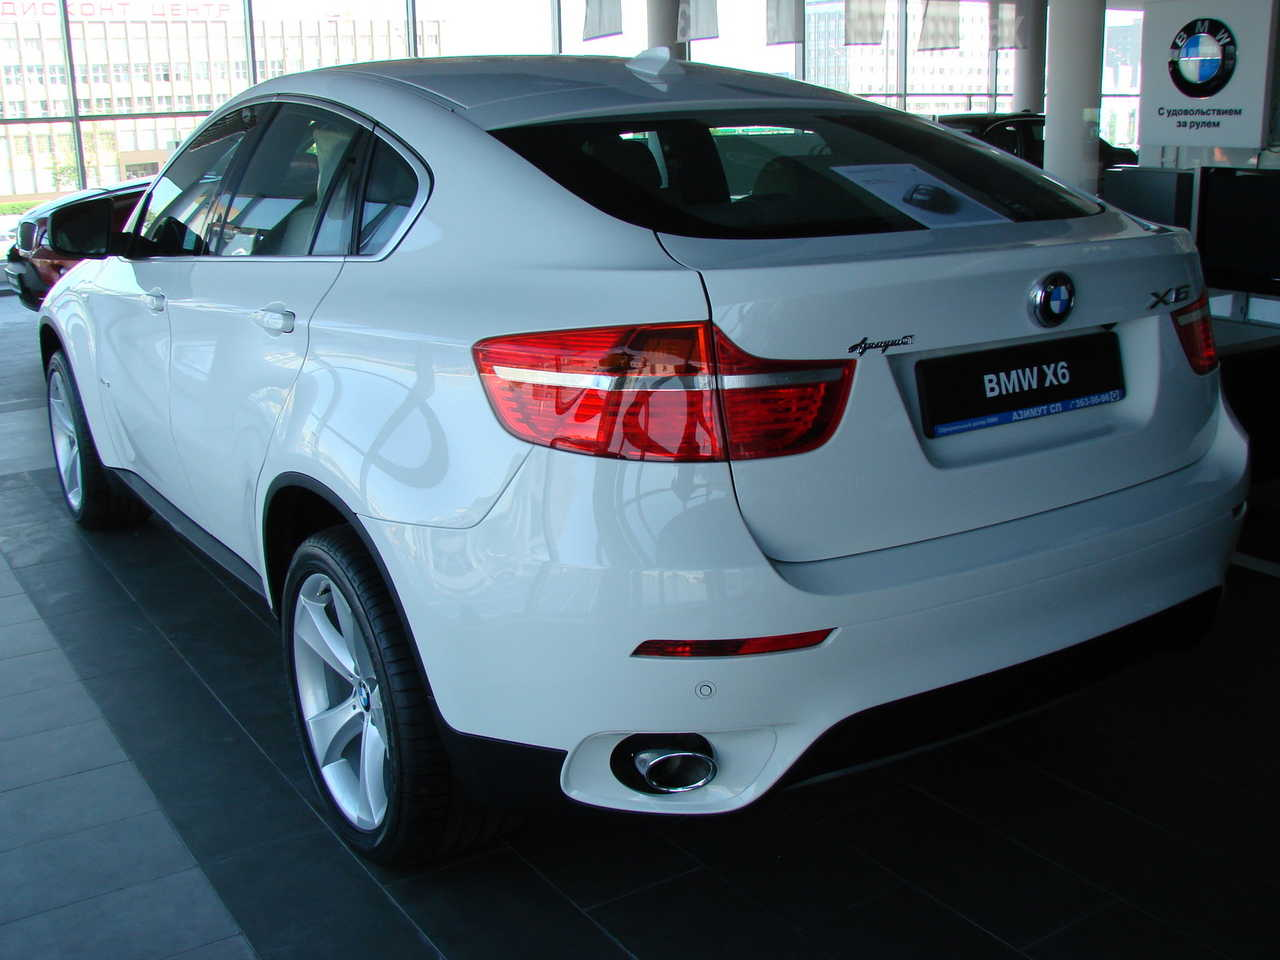 Used 2009 Bmw X6 Photos 3000cc Diesel Automatic For Sale